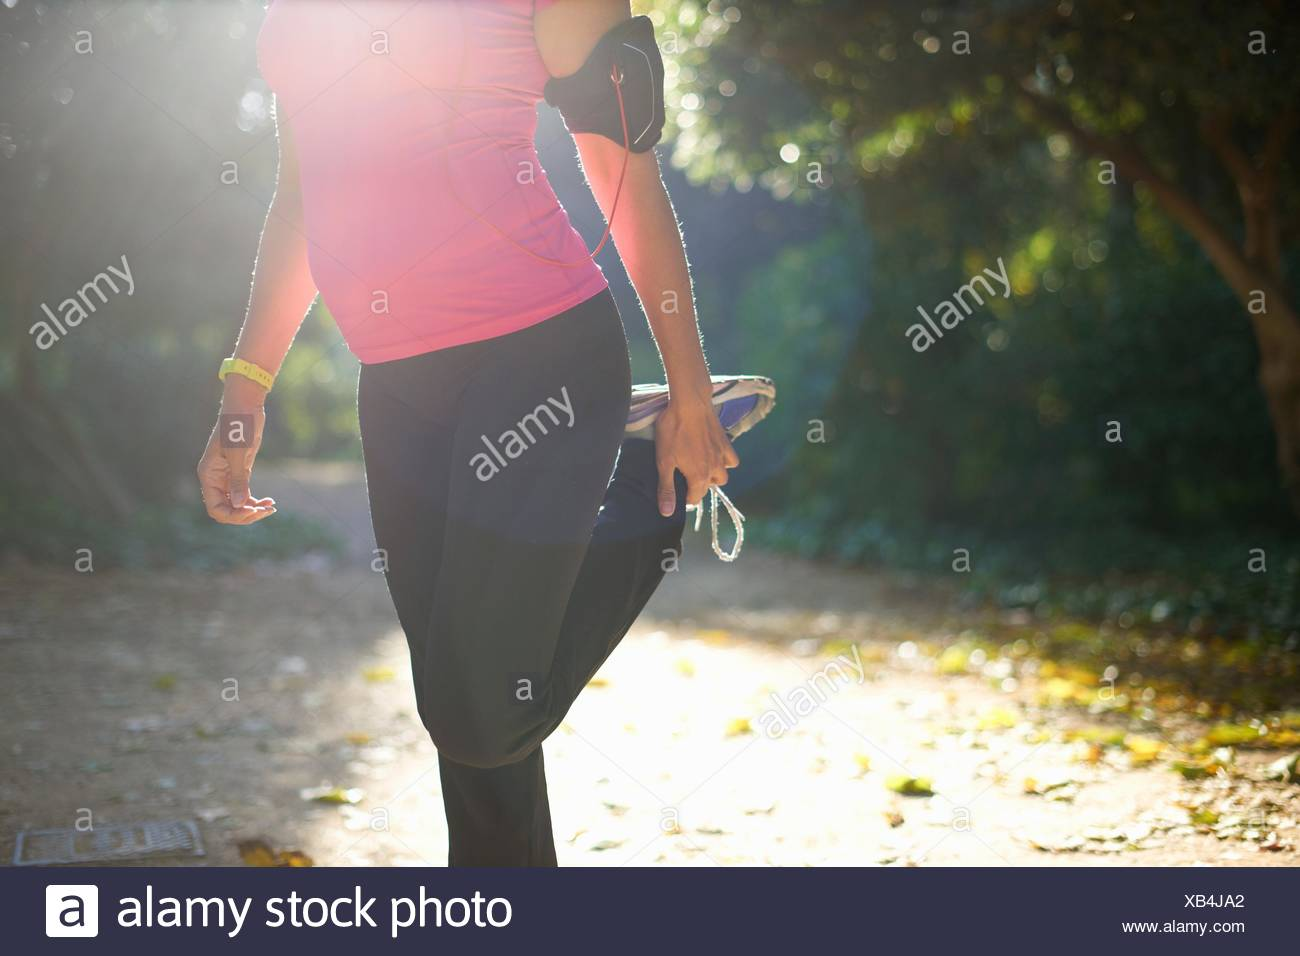 Chest down of mature woman wearing sports clothing, holding ankle stretching leg - Stock Image